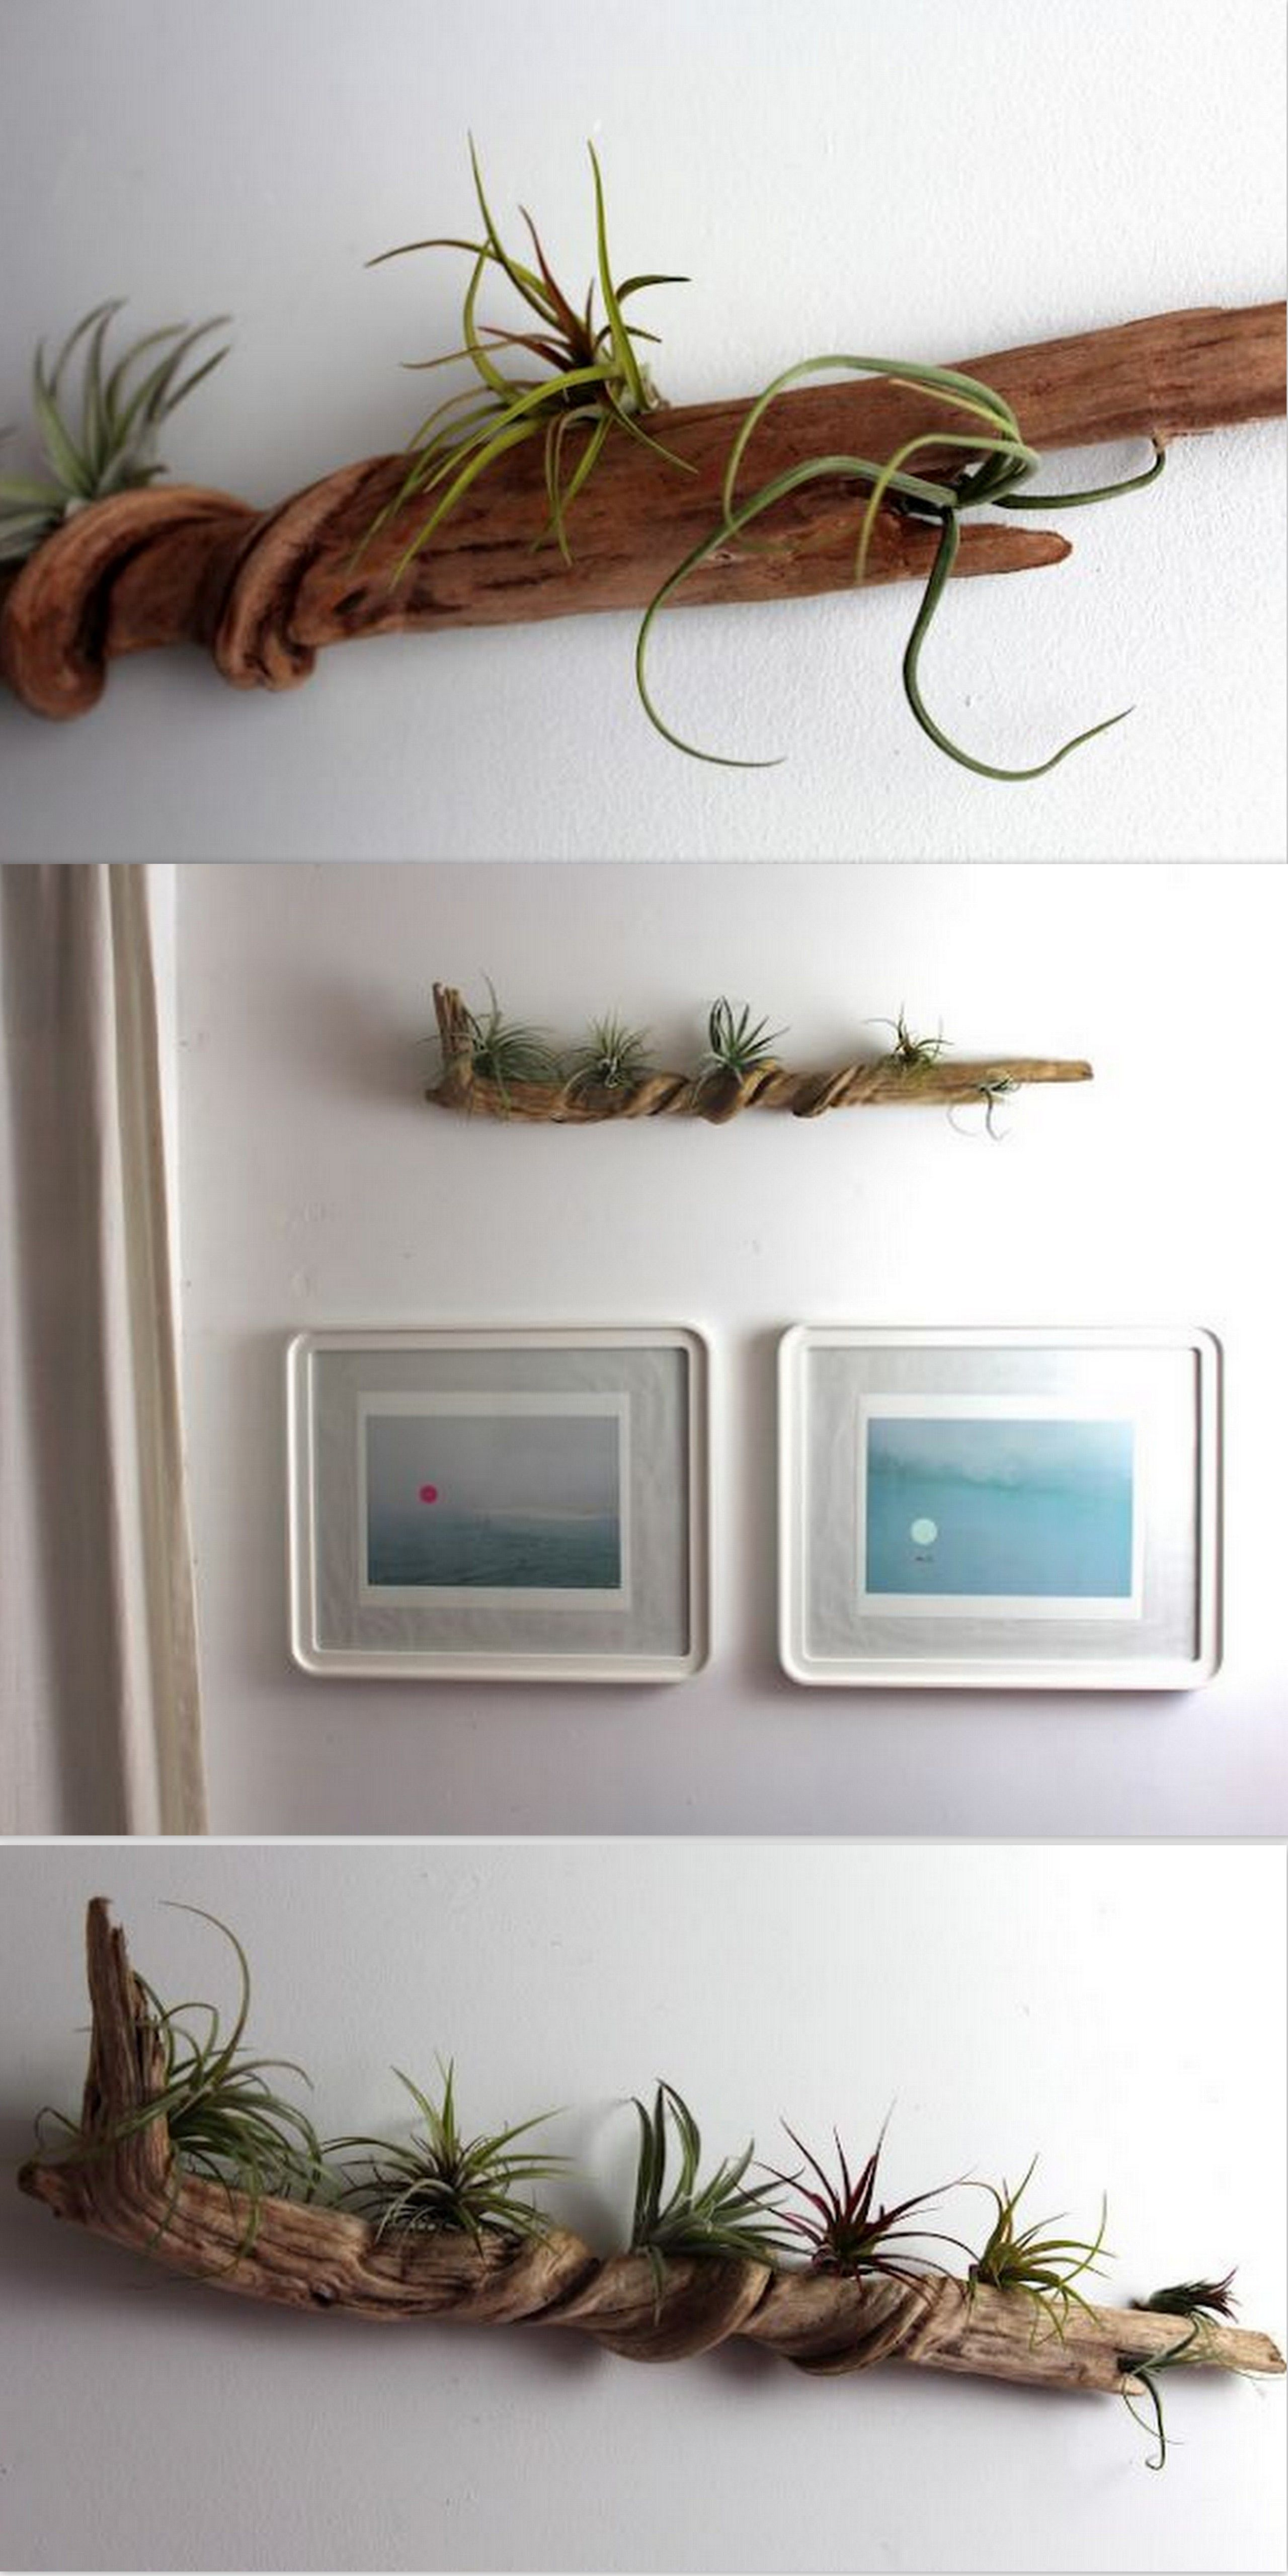 10 Diy Driftwood Decoration Ideas To Create A Unique Home Decor - Unique-home-decor-ideas